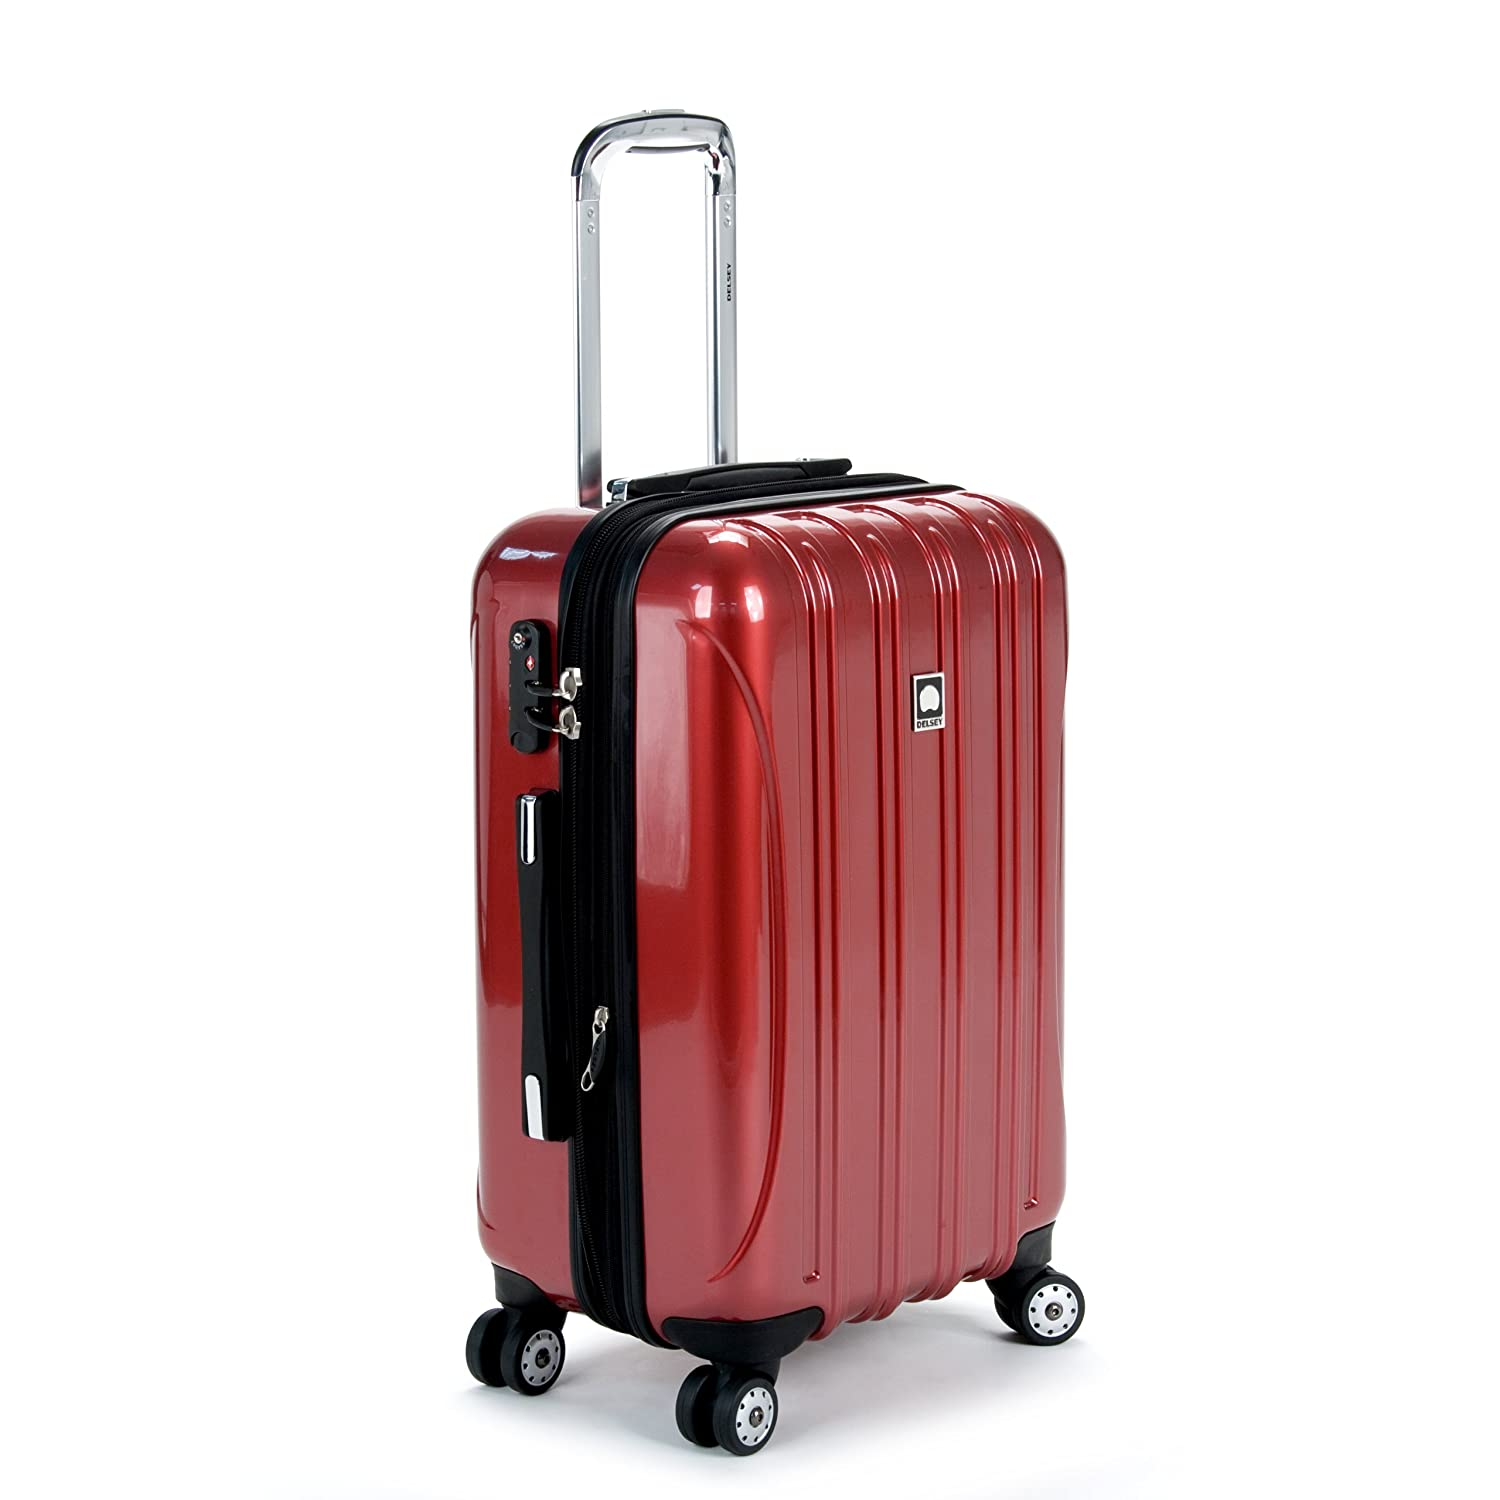 Delsey Luggage Helium Aero, Carry On Luggage, Hard Case Spinner Suitcase, Red Inc. 07644RD